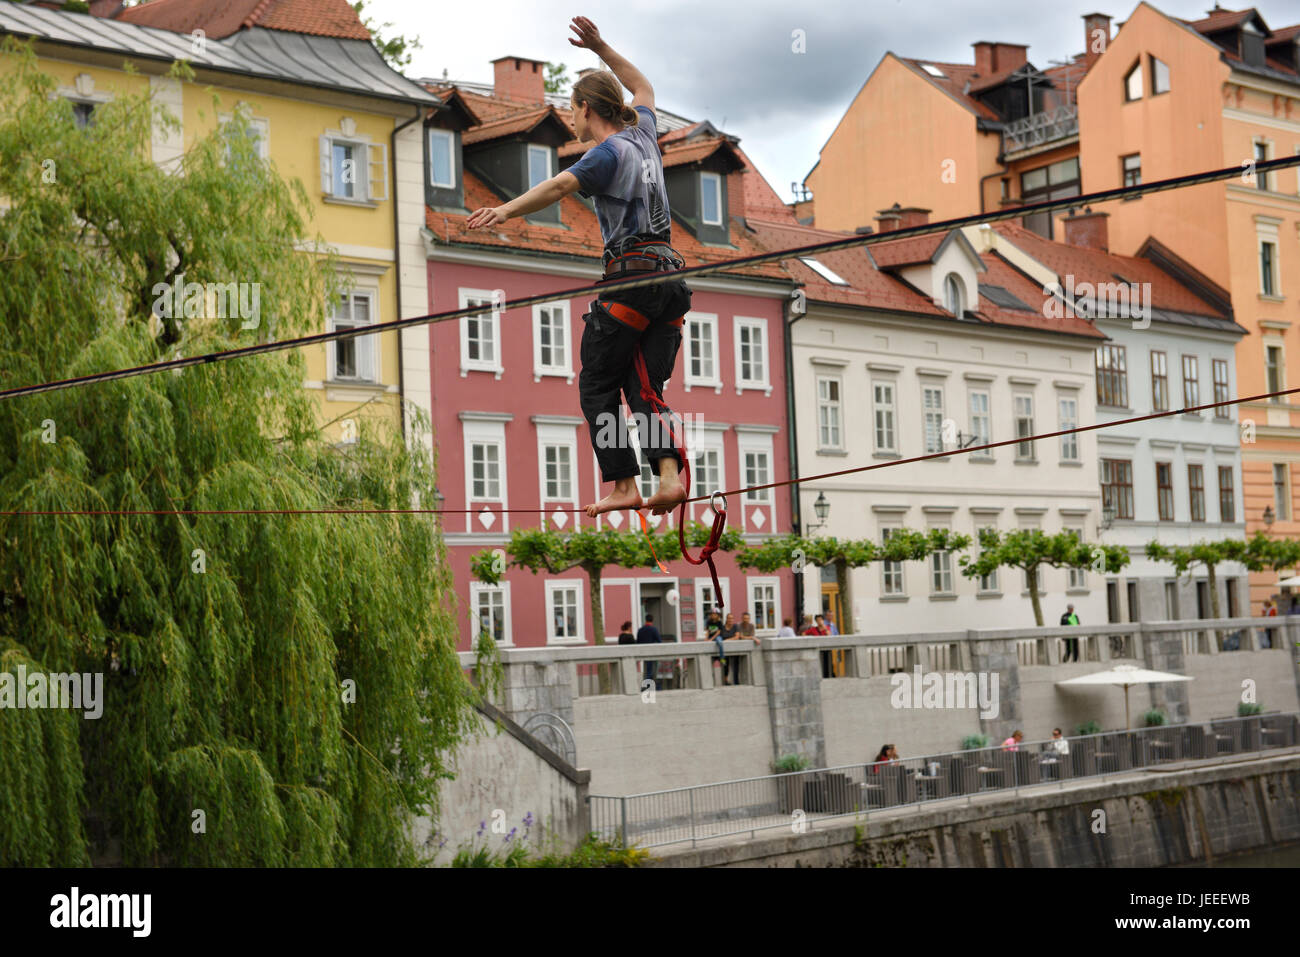 Young man balancing on a slack line high over the Ljubljanica river canal in the old section of Ljubljana Slovenia - Stock Image